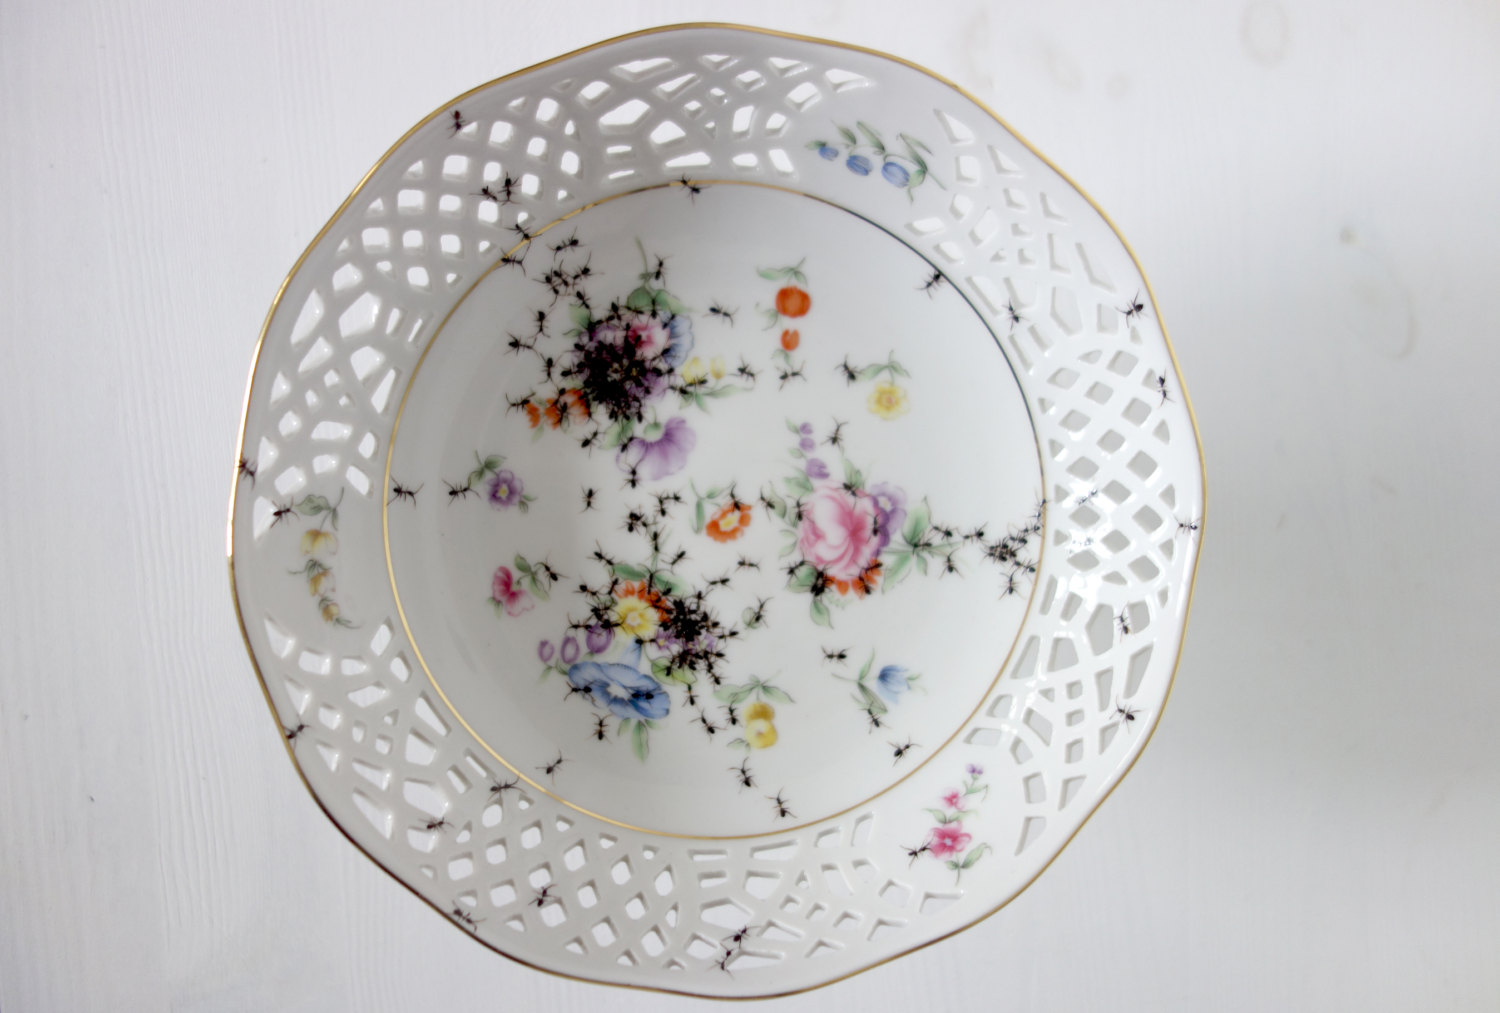 Bowl - Hand Painted Porcelain by La Philie - Evelyn Bracklow